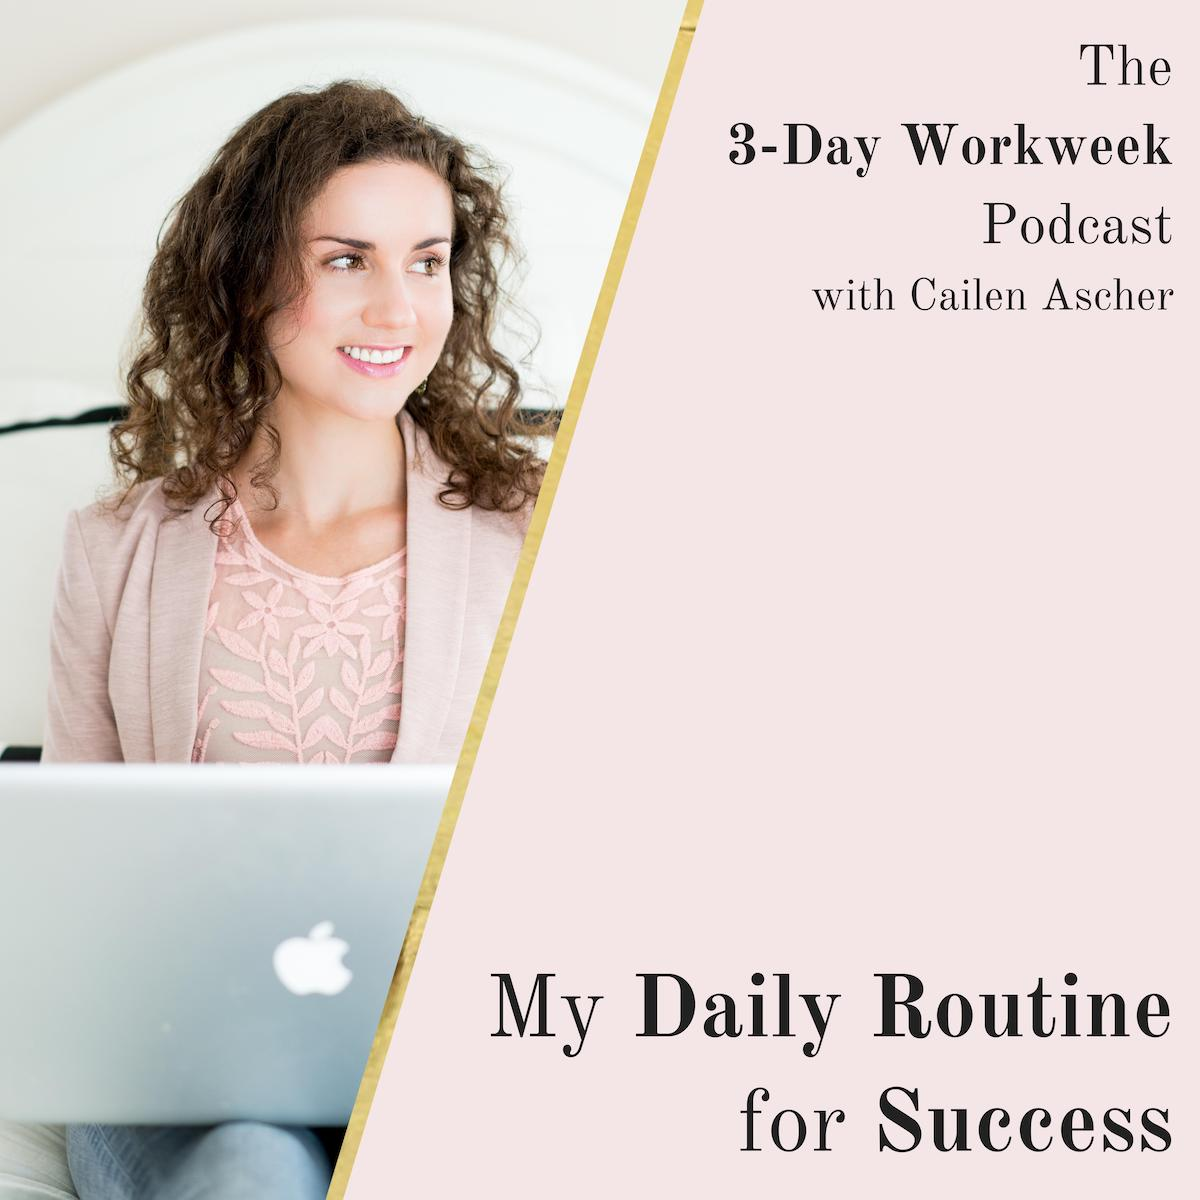 The 3-Day Workweek Podcast with Cailen Ascher - 2019-04-10 - My Routine for Success.jpg